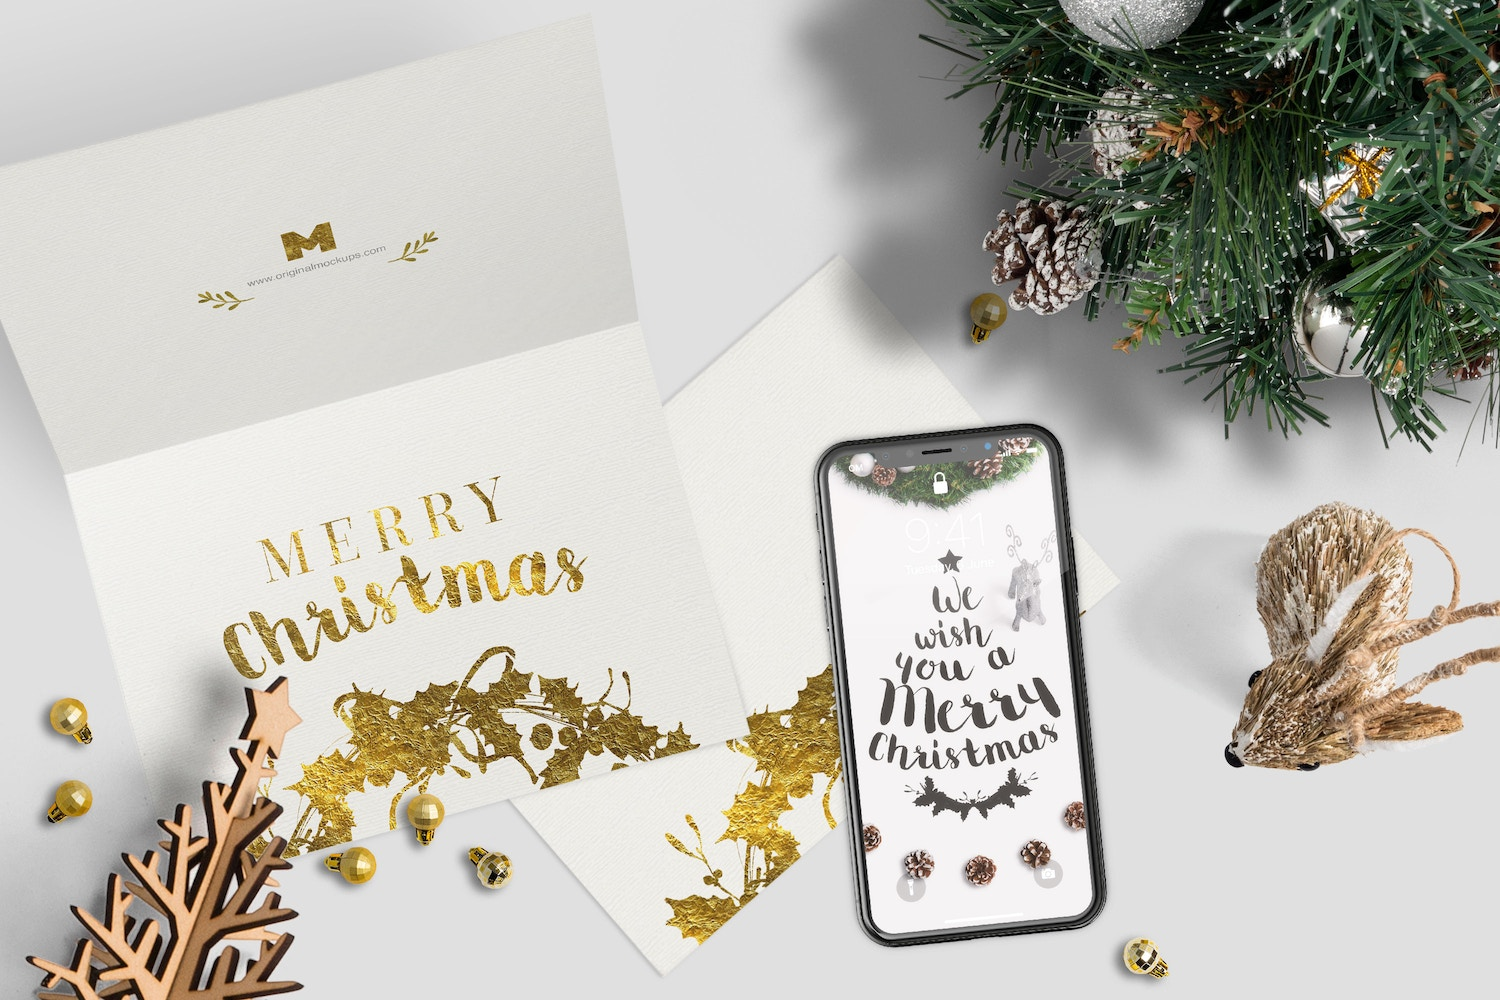 Christmas Header and Hero Scene Mockup 17 by Original Mockups on Original Mockups